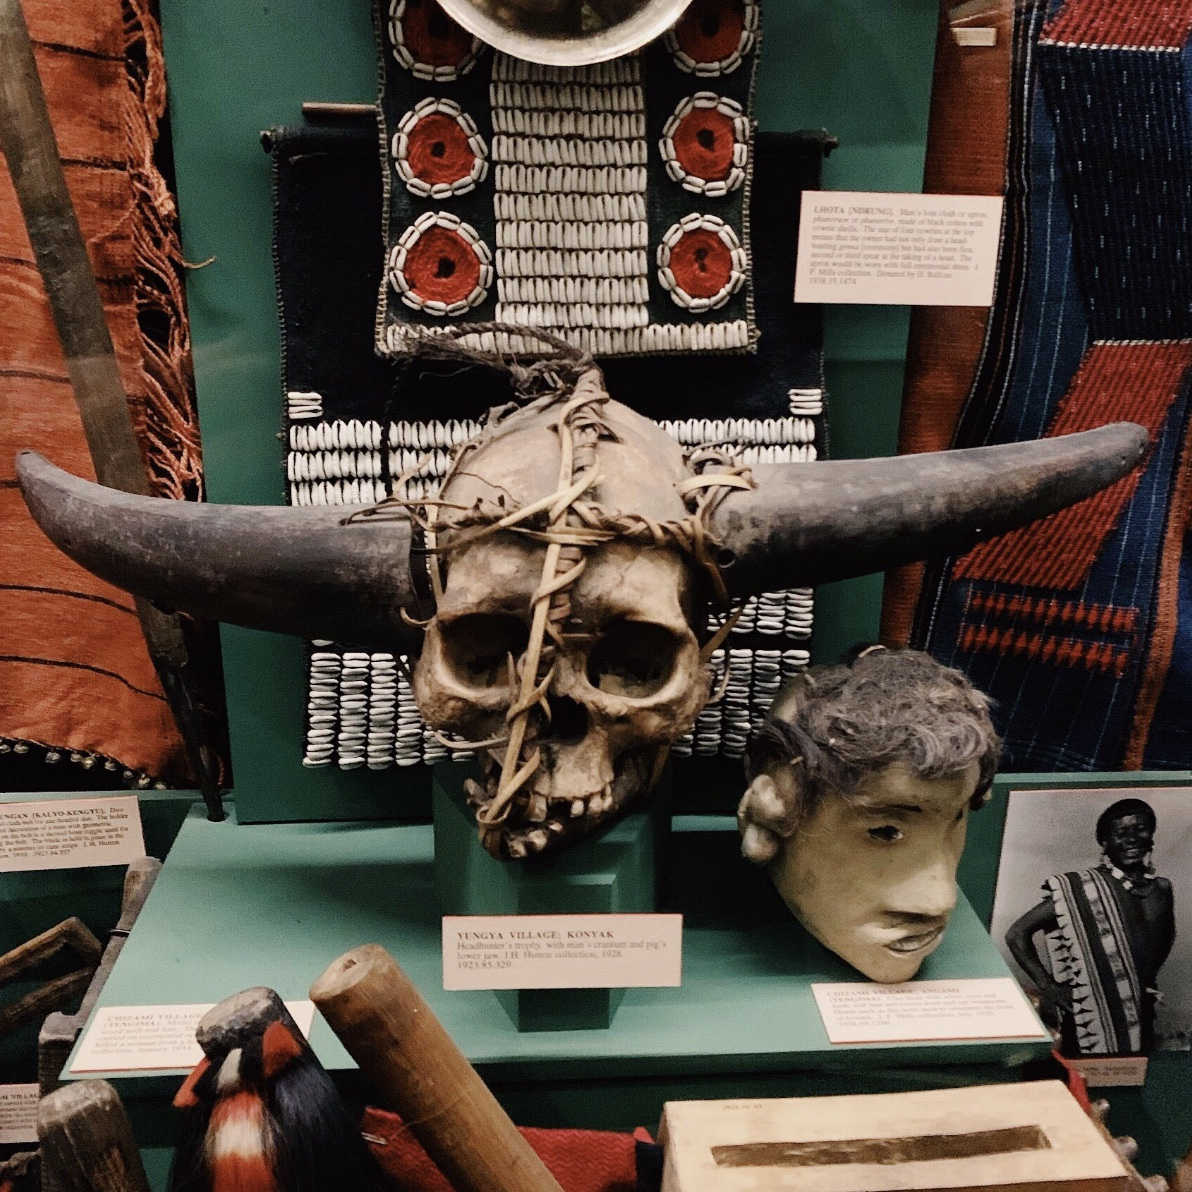 Pitt rivers museum, wunderkammer, cabinet of curiosities, oddities,